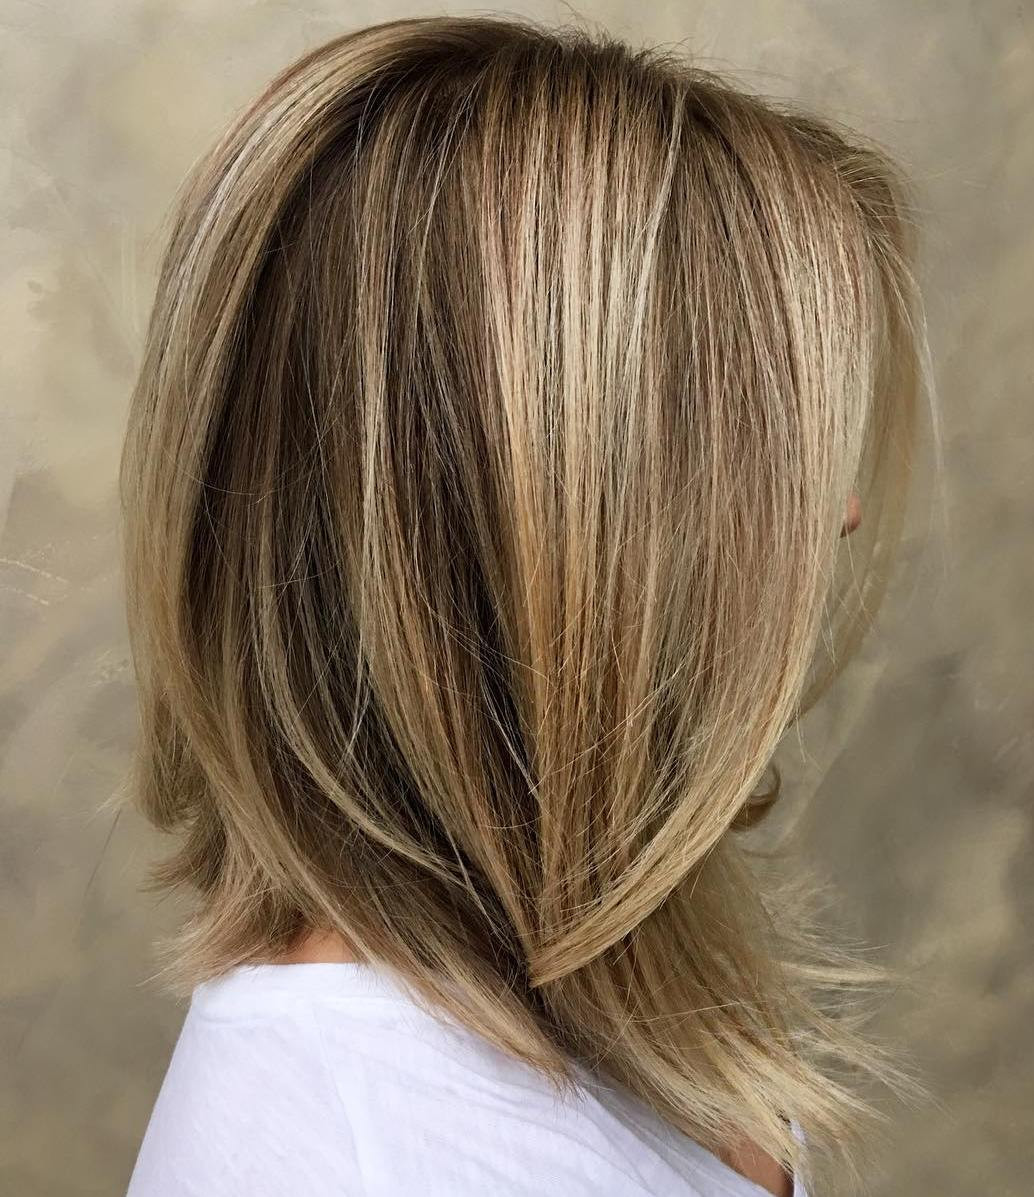 Best ideas about Hairstyles For Bob Cuts . Save or Pin 60 Inspiring Long Bob Hairstyles and Long Bob Haircuts for Now.